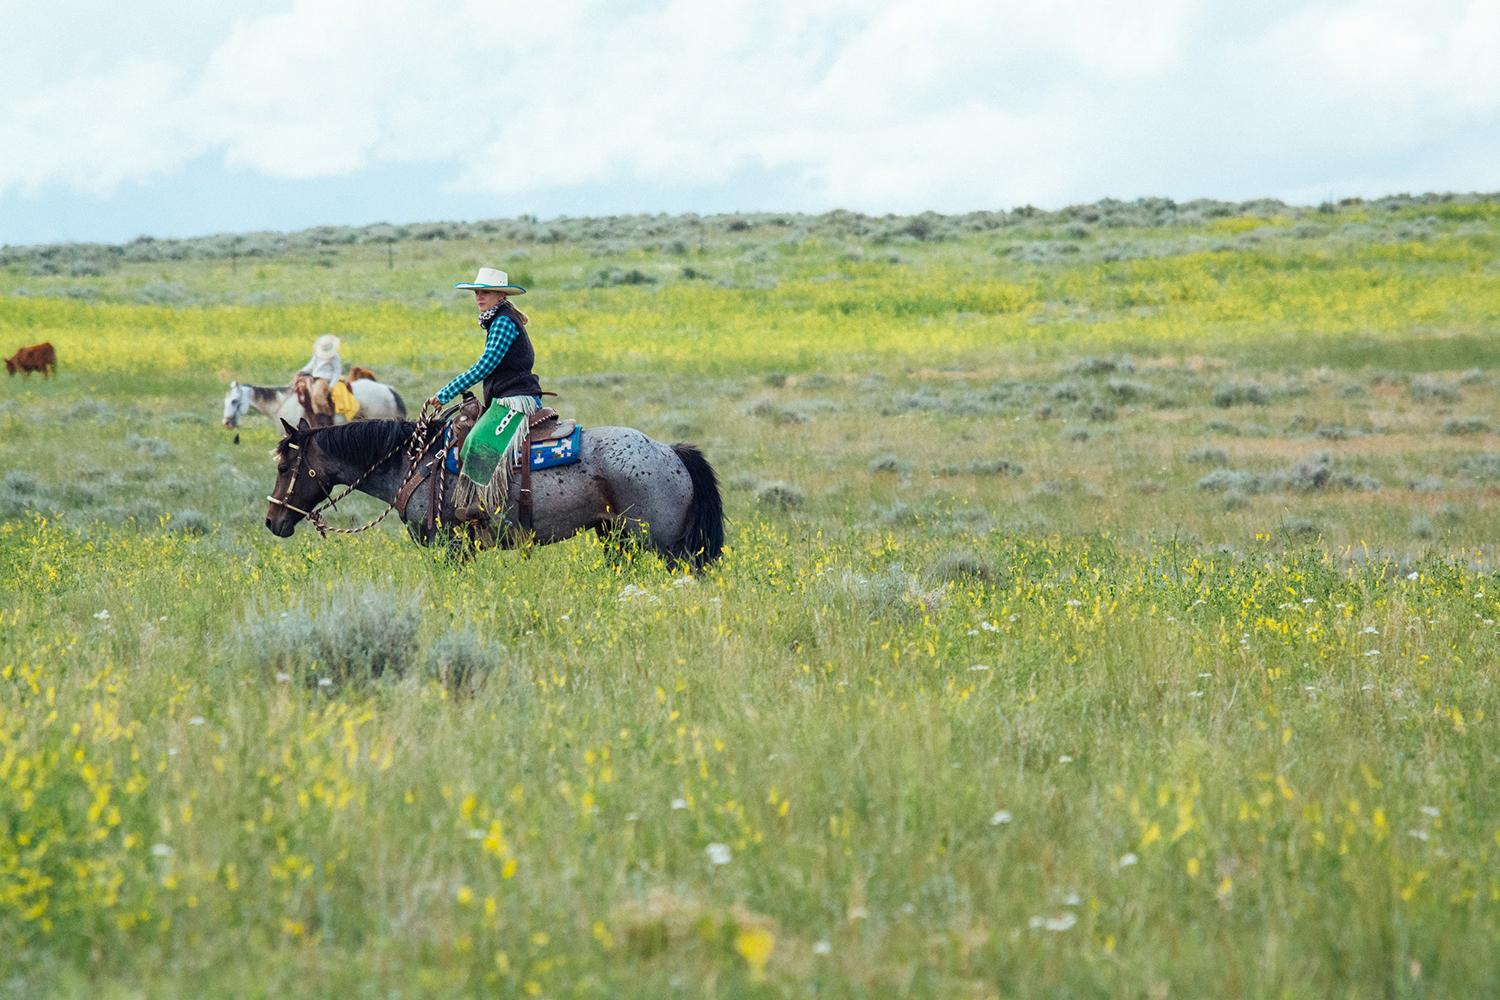 Young woman riding horseback on the range moving cattle.